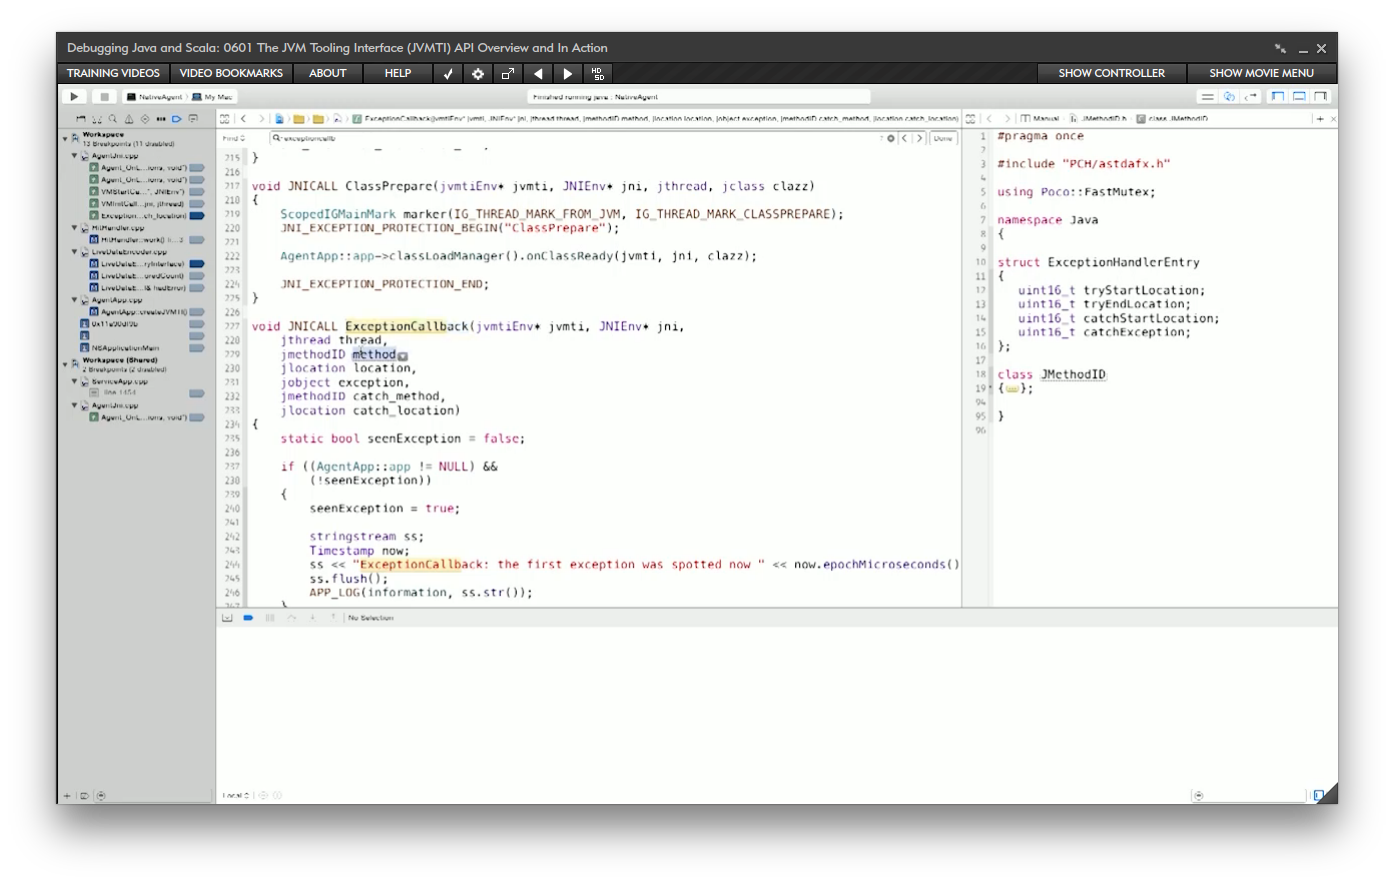 Amazon com: Debugging Java and Scala [Online Code]: Software